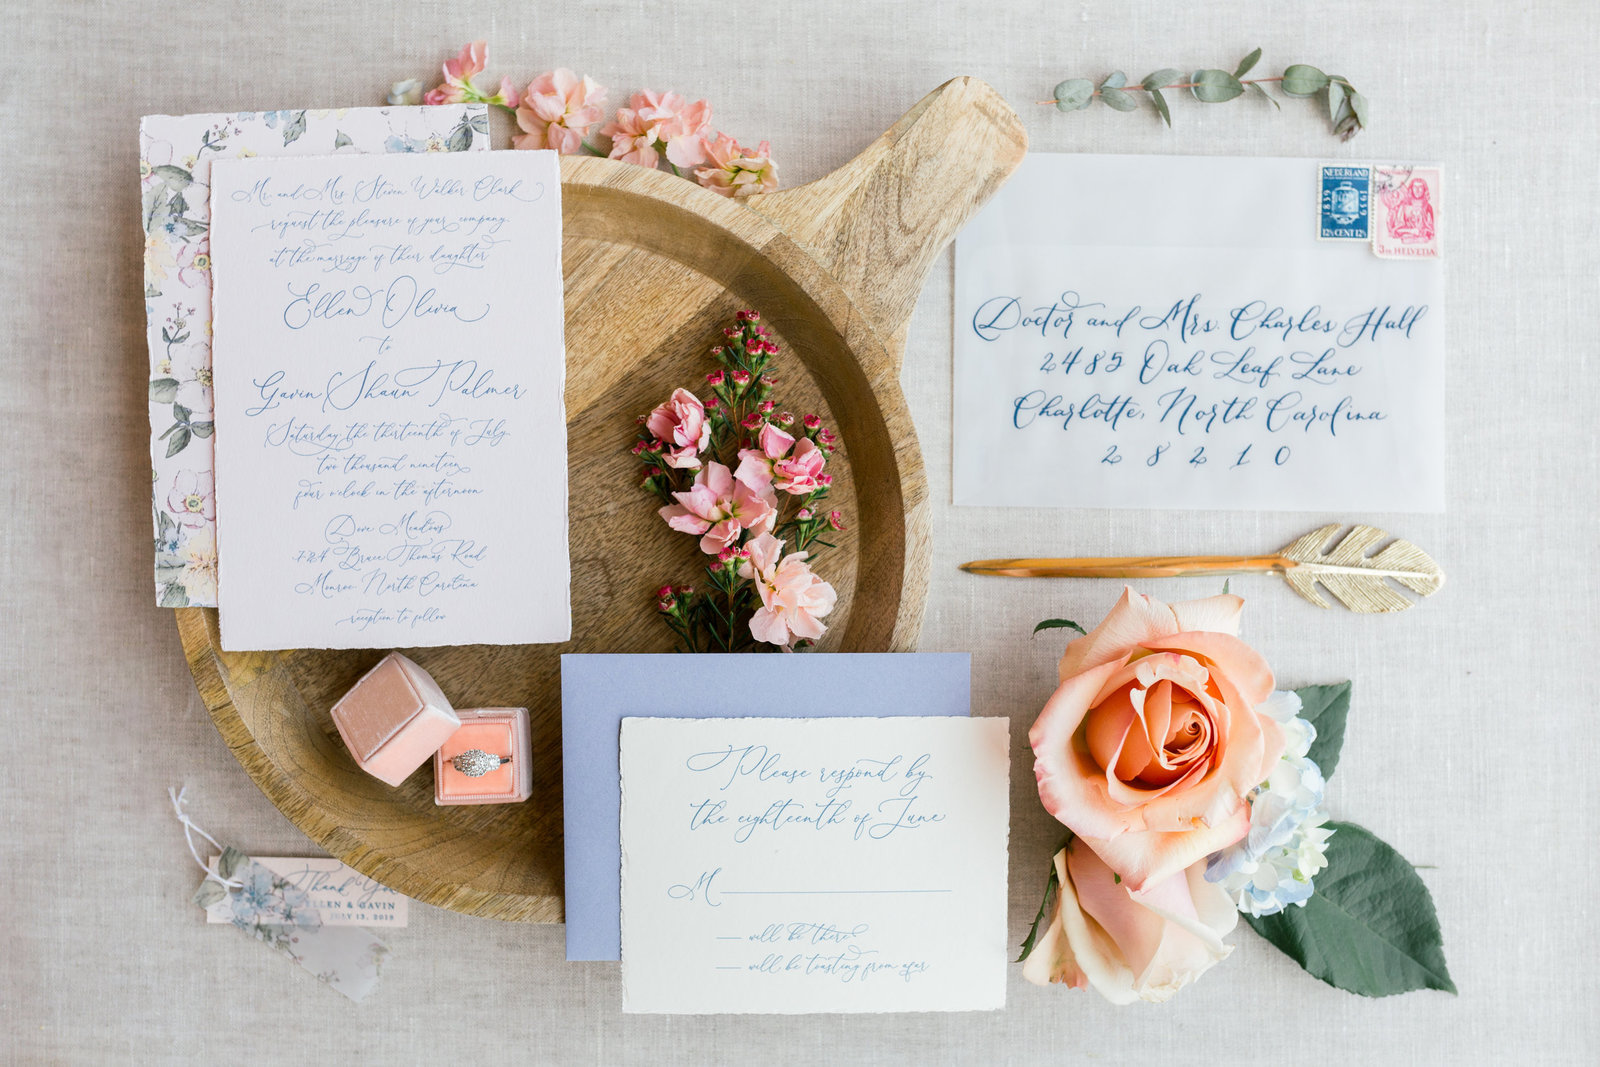 Custom invitation suite with vintage watercolor florals, deckled edges, and a vellum envelope